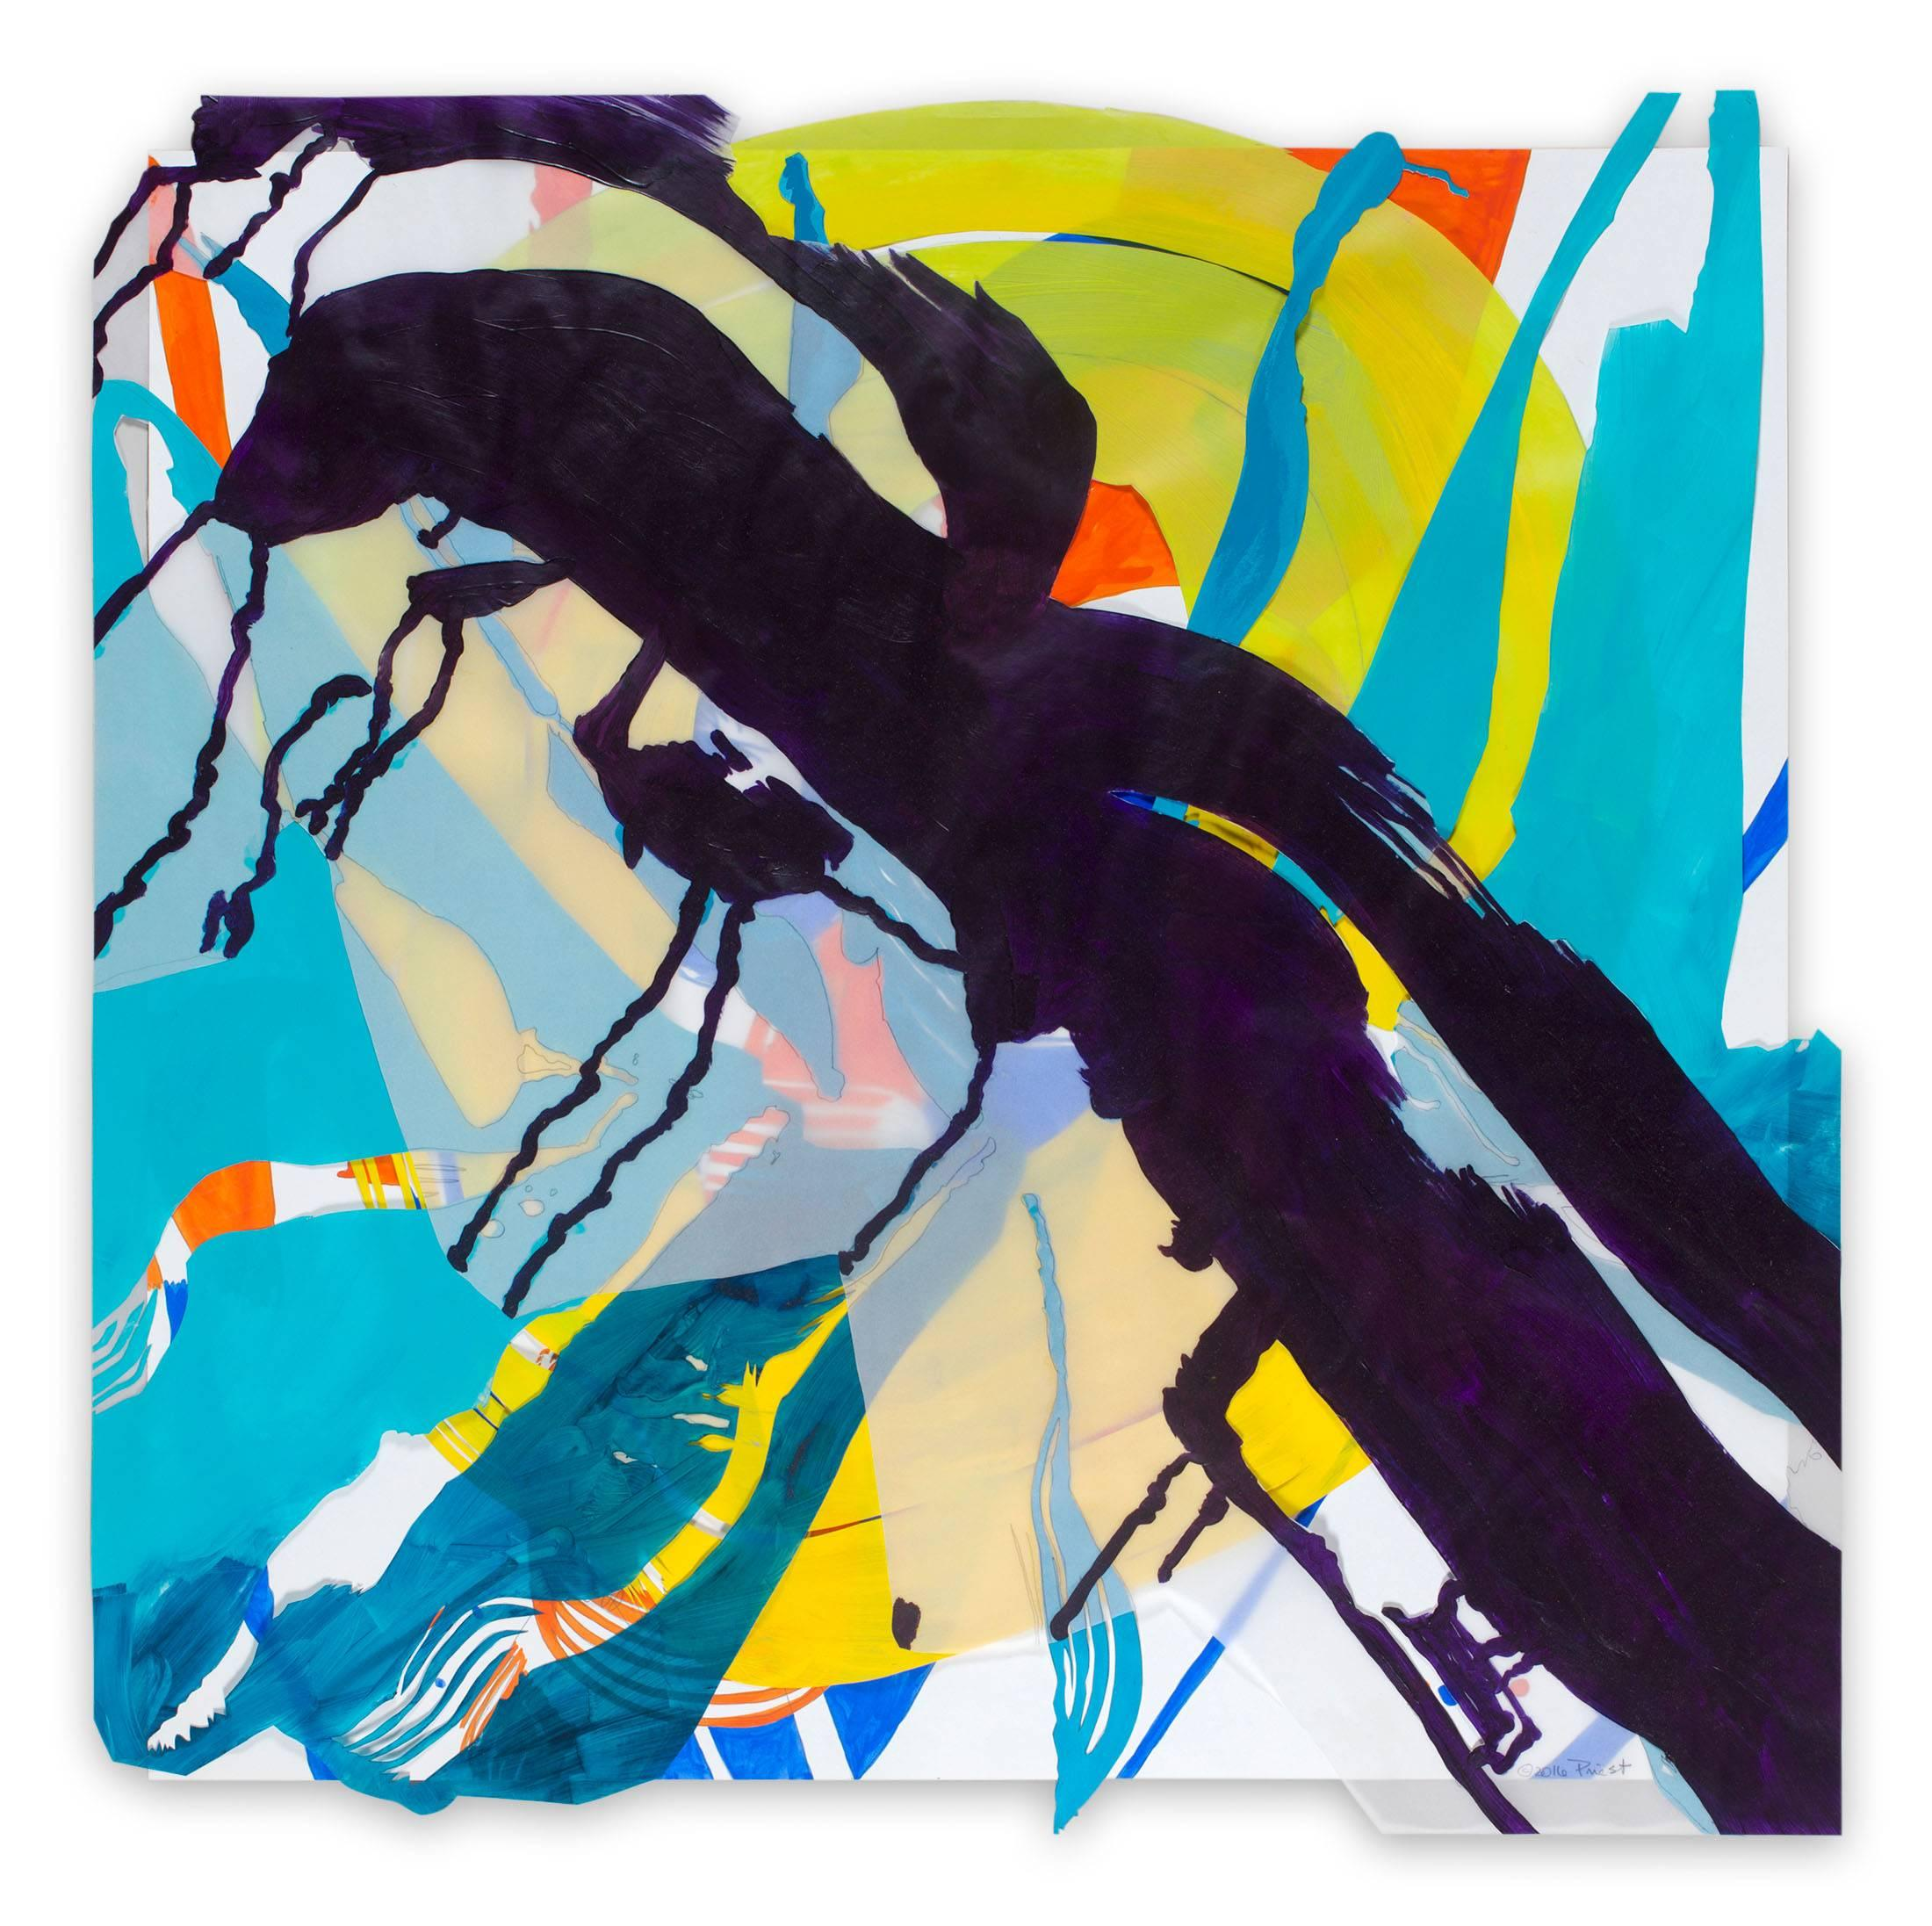 Jazz Cubano #27: Arturo and Elio, Thinking Out Loud (Abstract painting)